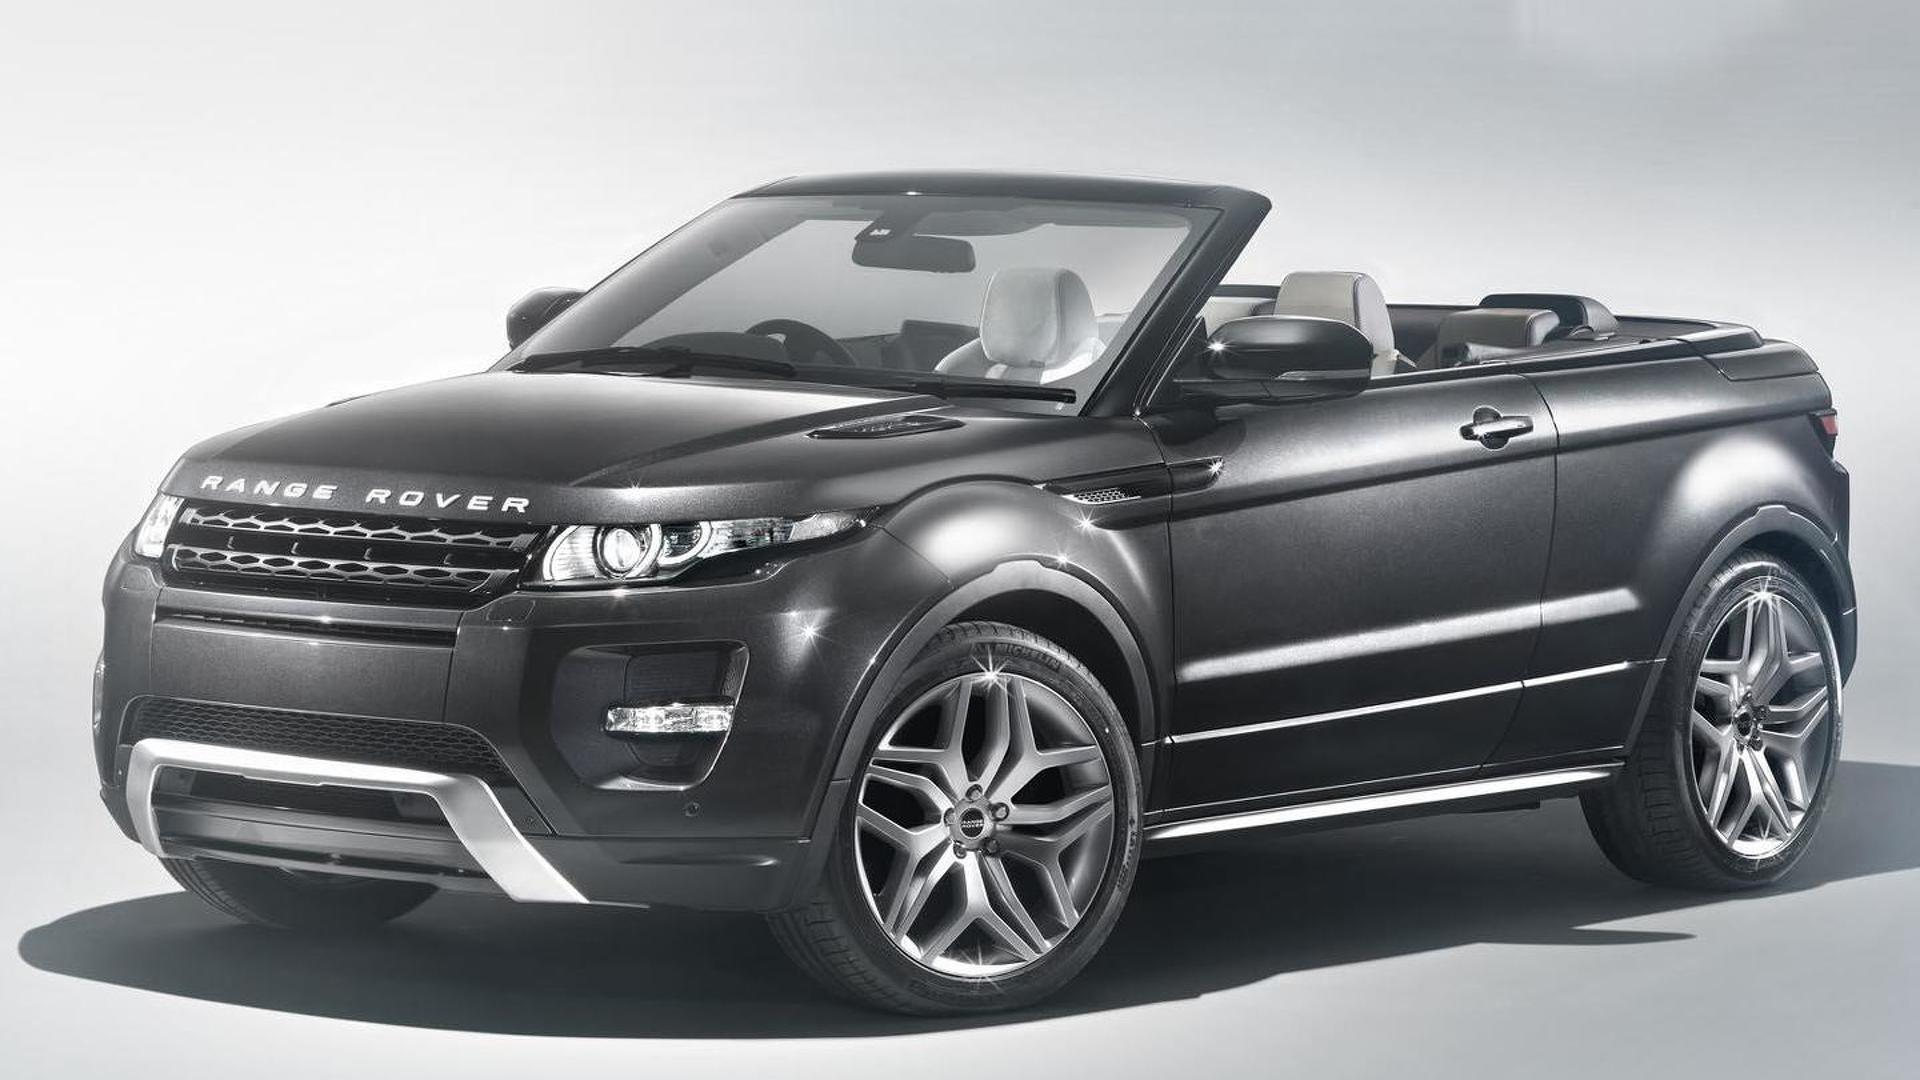 Range Rover Evoque Cabrio expected to go on sale this year, more derivatives possible